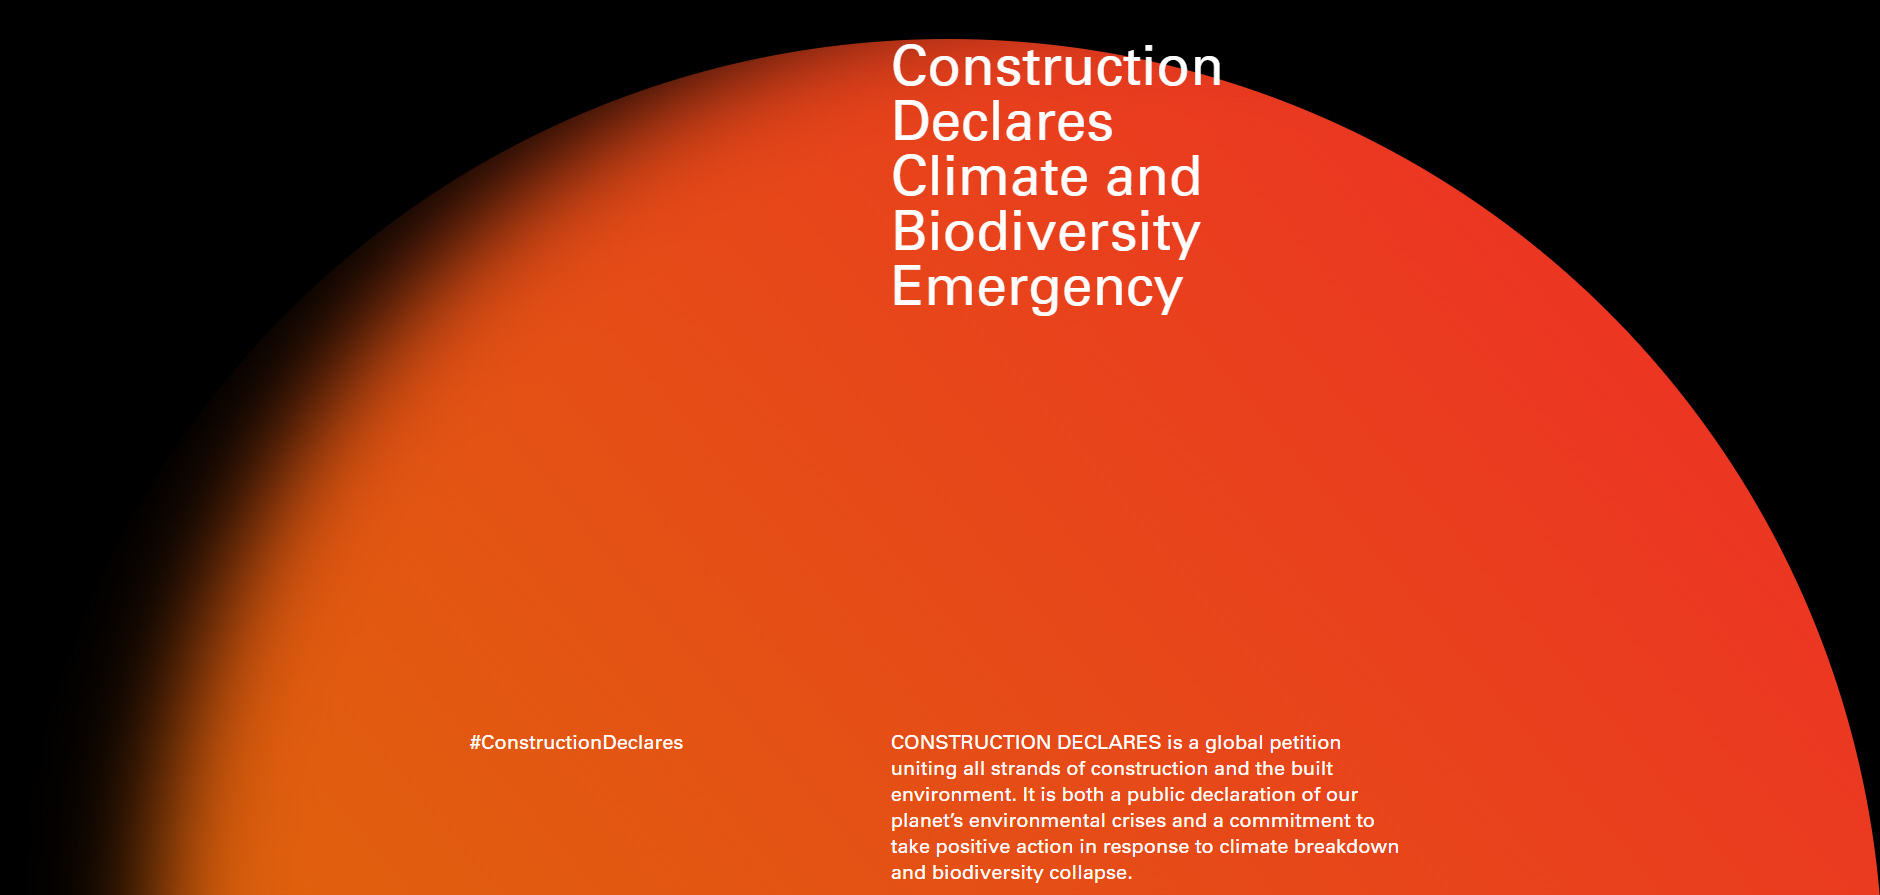 Construction Declares Climate and Biodiversity Emergency